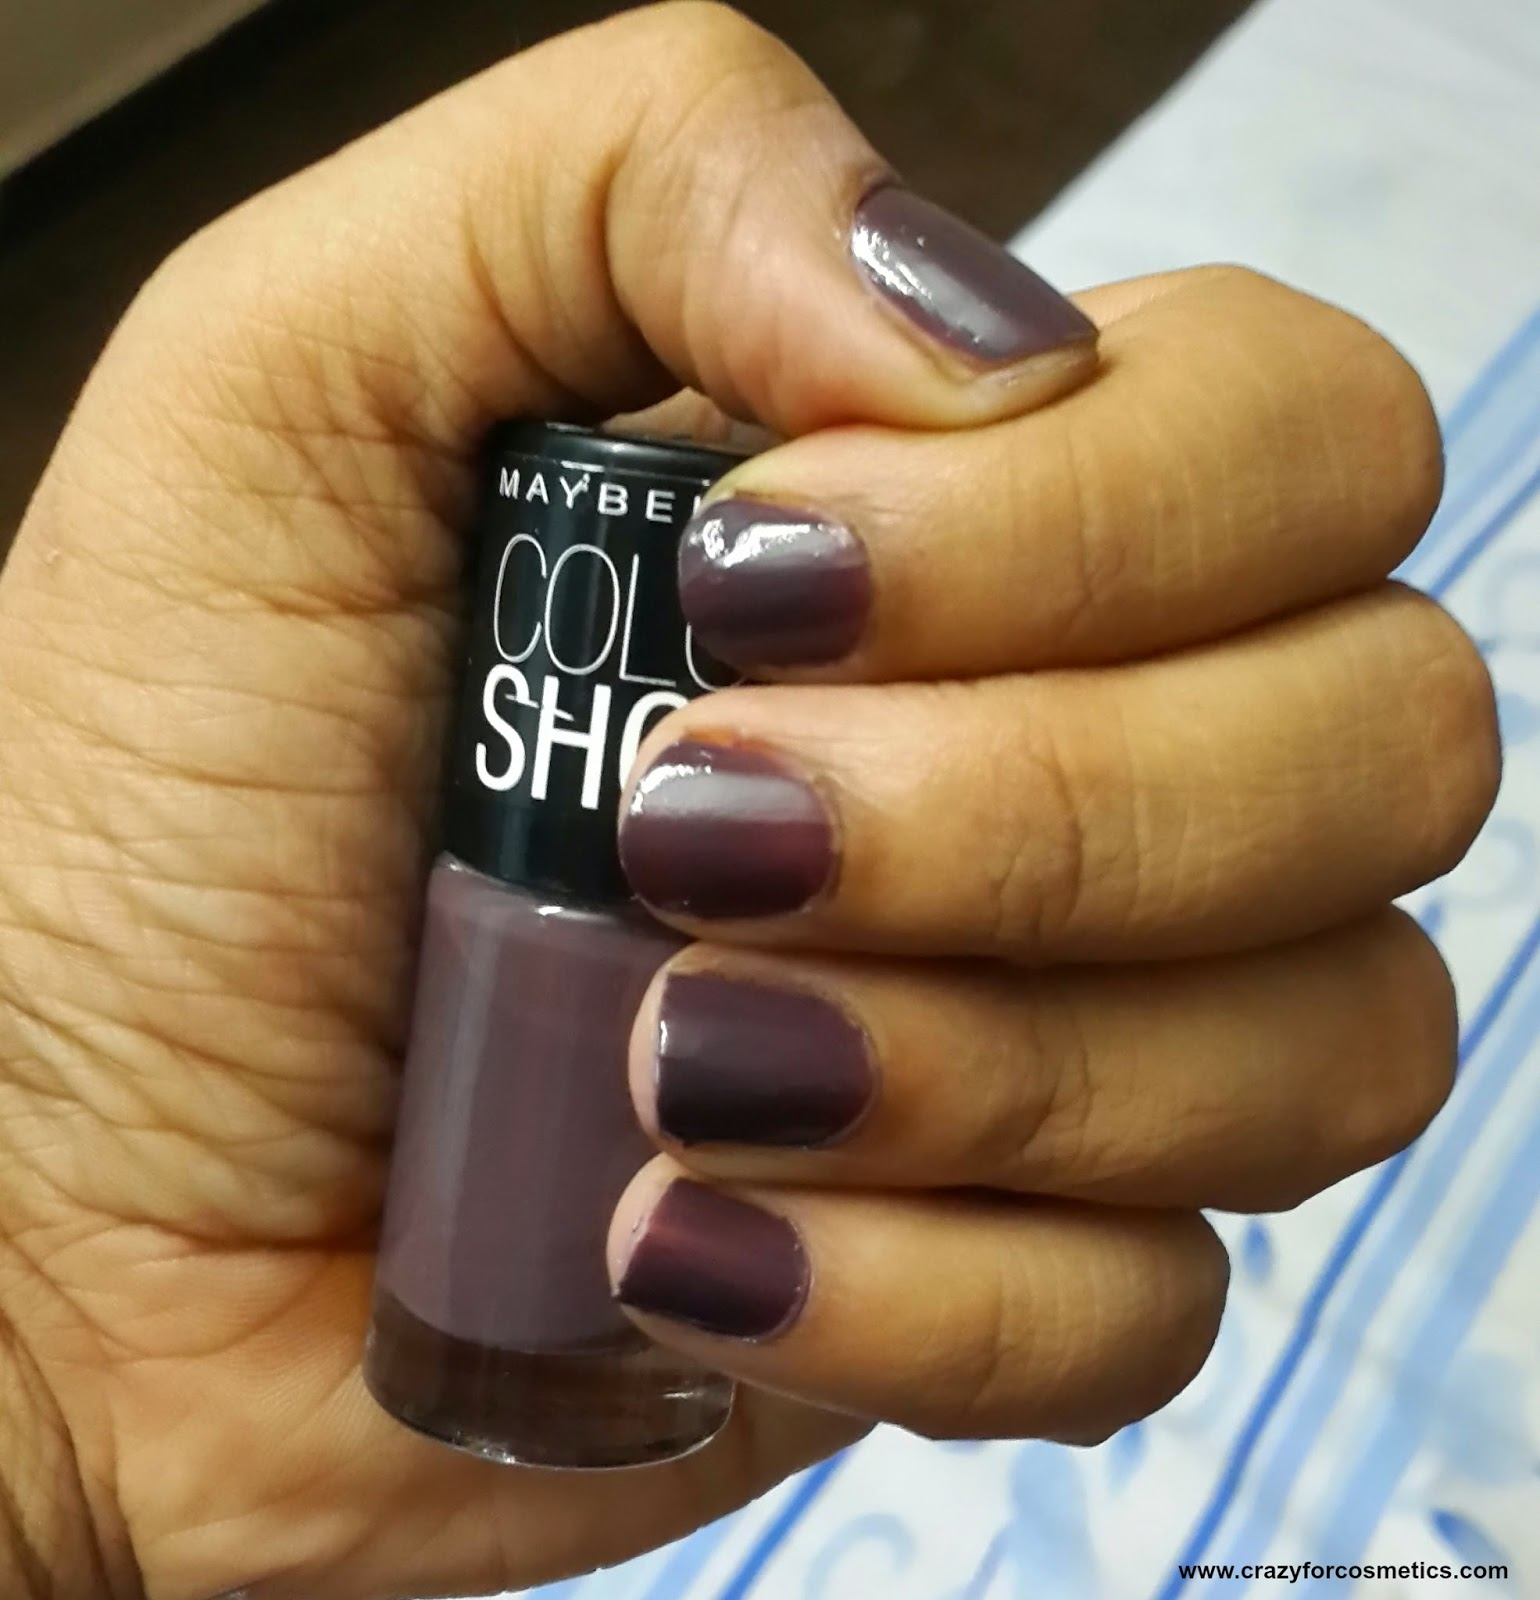 Notd Amp Ootd For Starbucks Night In Chennai Midnight Taupe Crazy For Cosmetics A Singapore